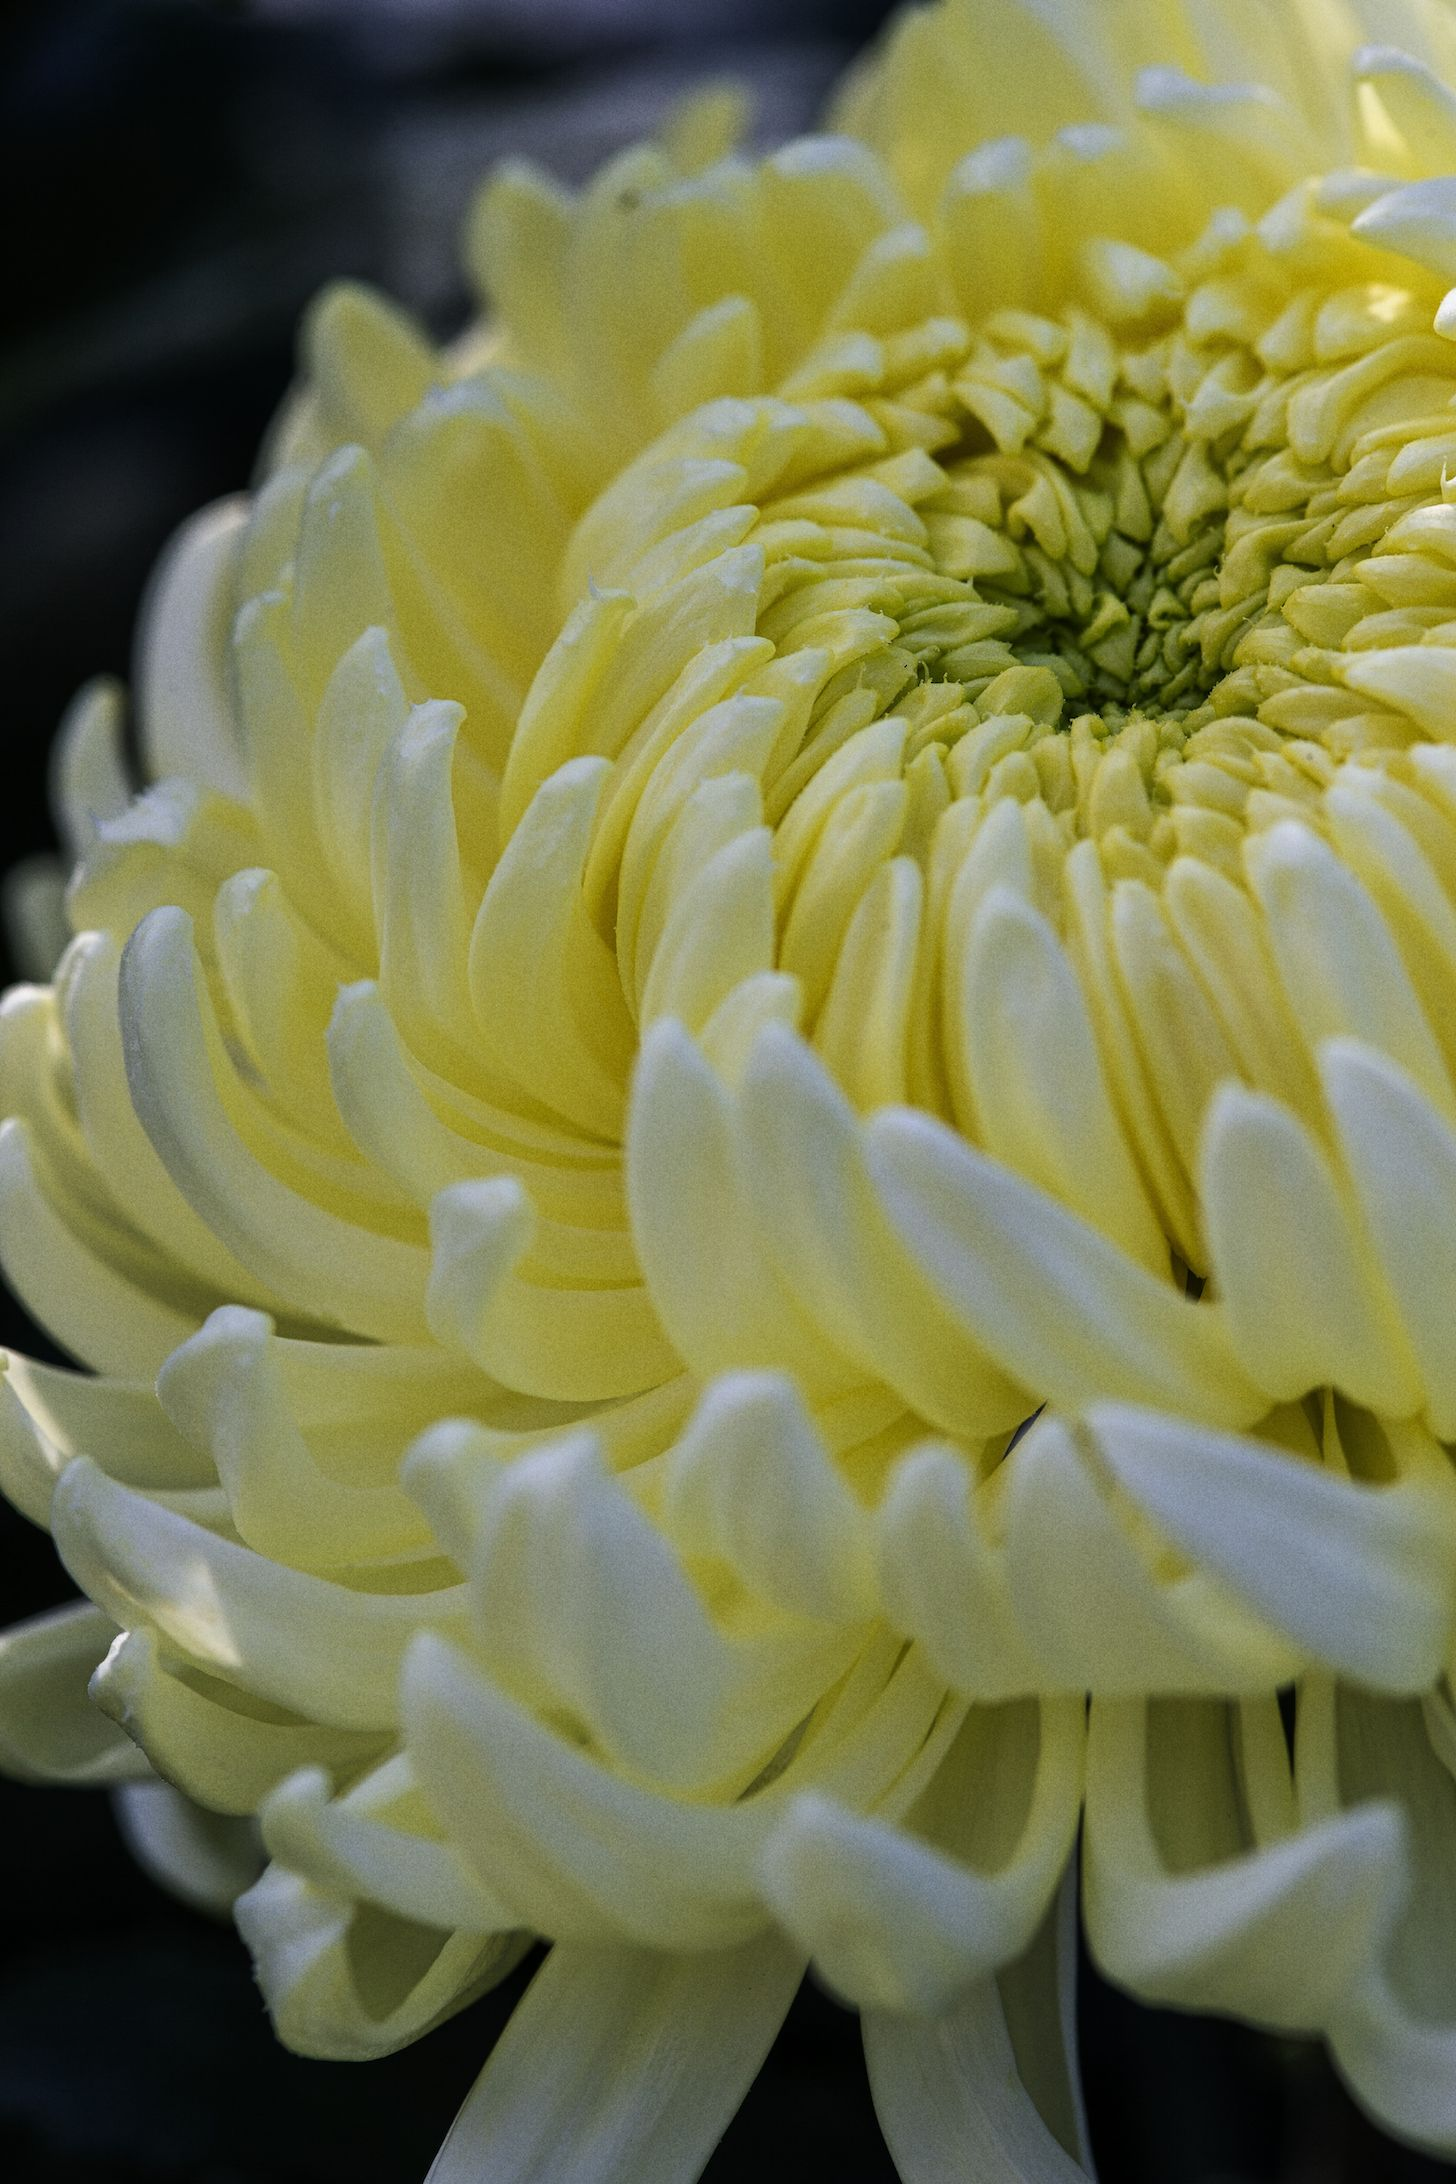 Tatton Park Flower Show 2019: Chrysanthemums Direct will take centre stage as Master Grower